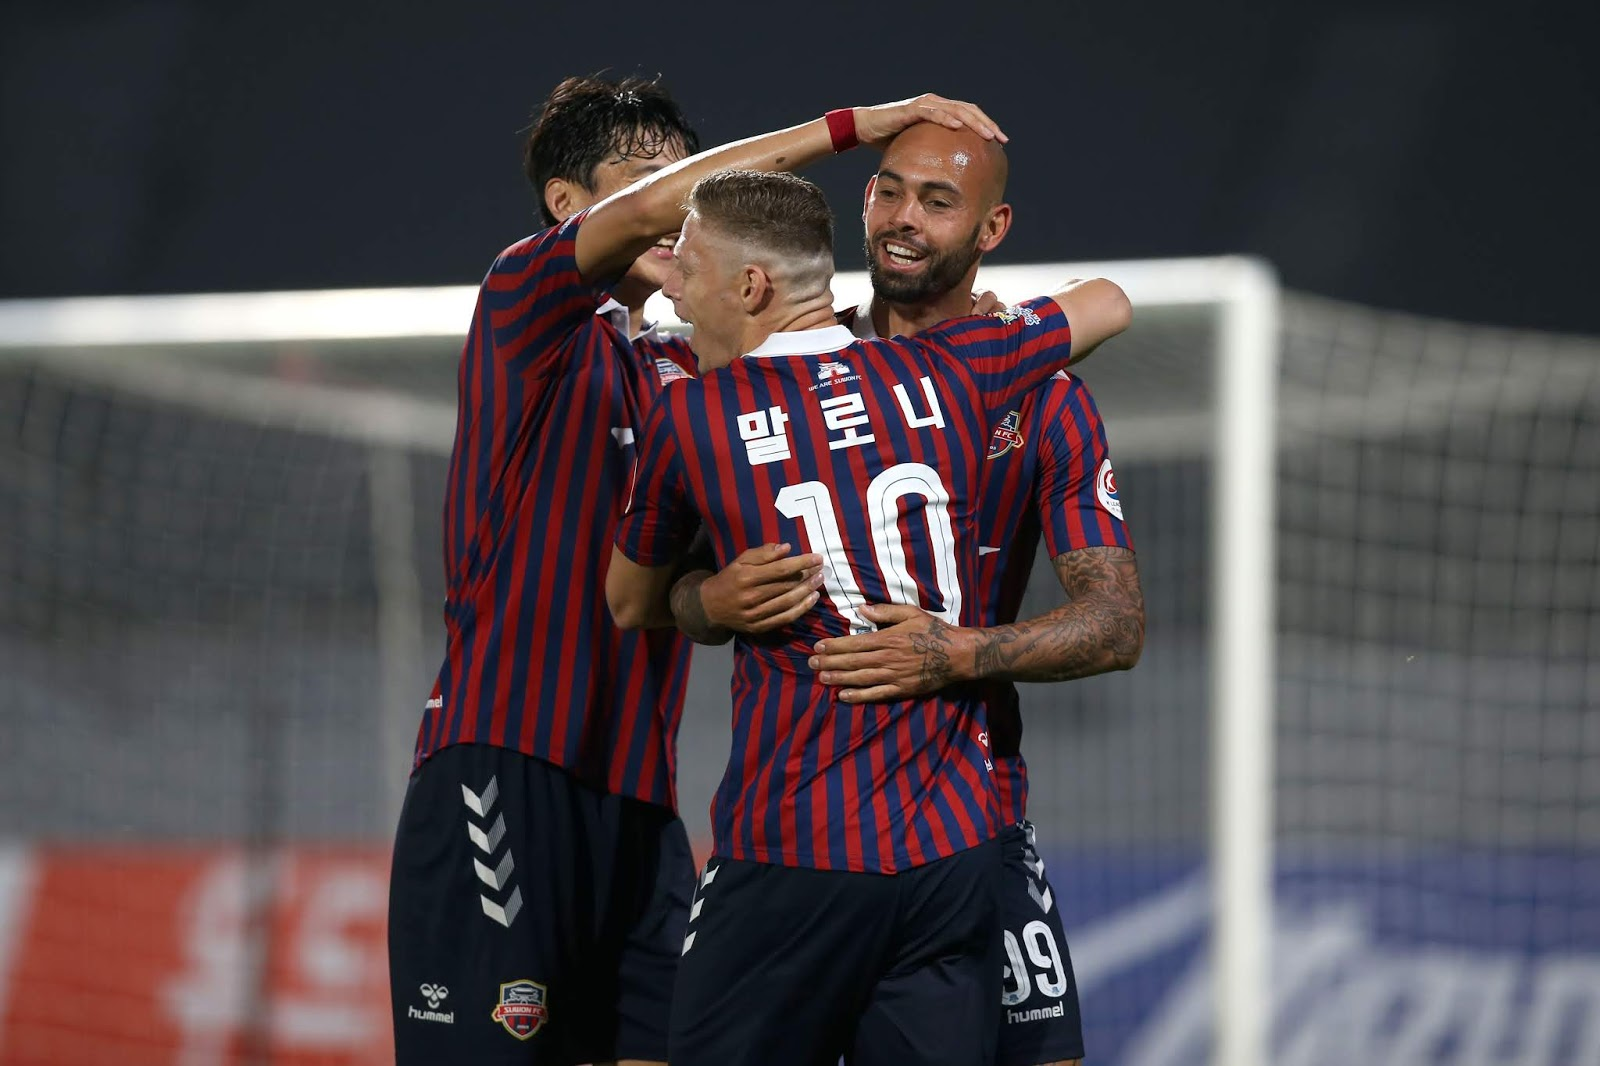 Suwon players celebrate a goal against Asan in their 5-0 win on May 24th.